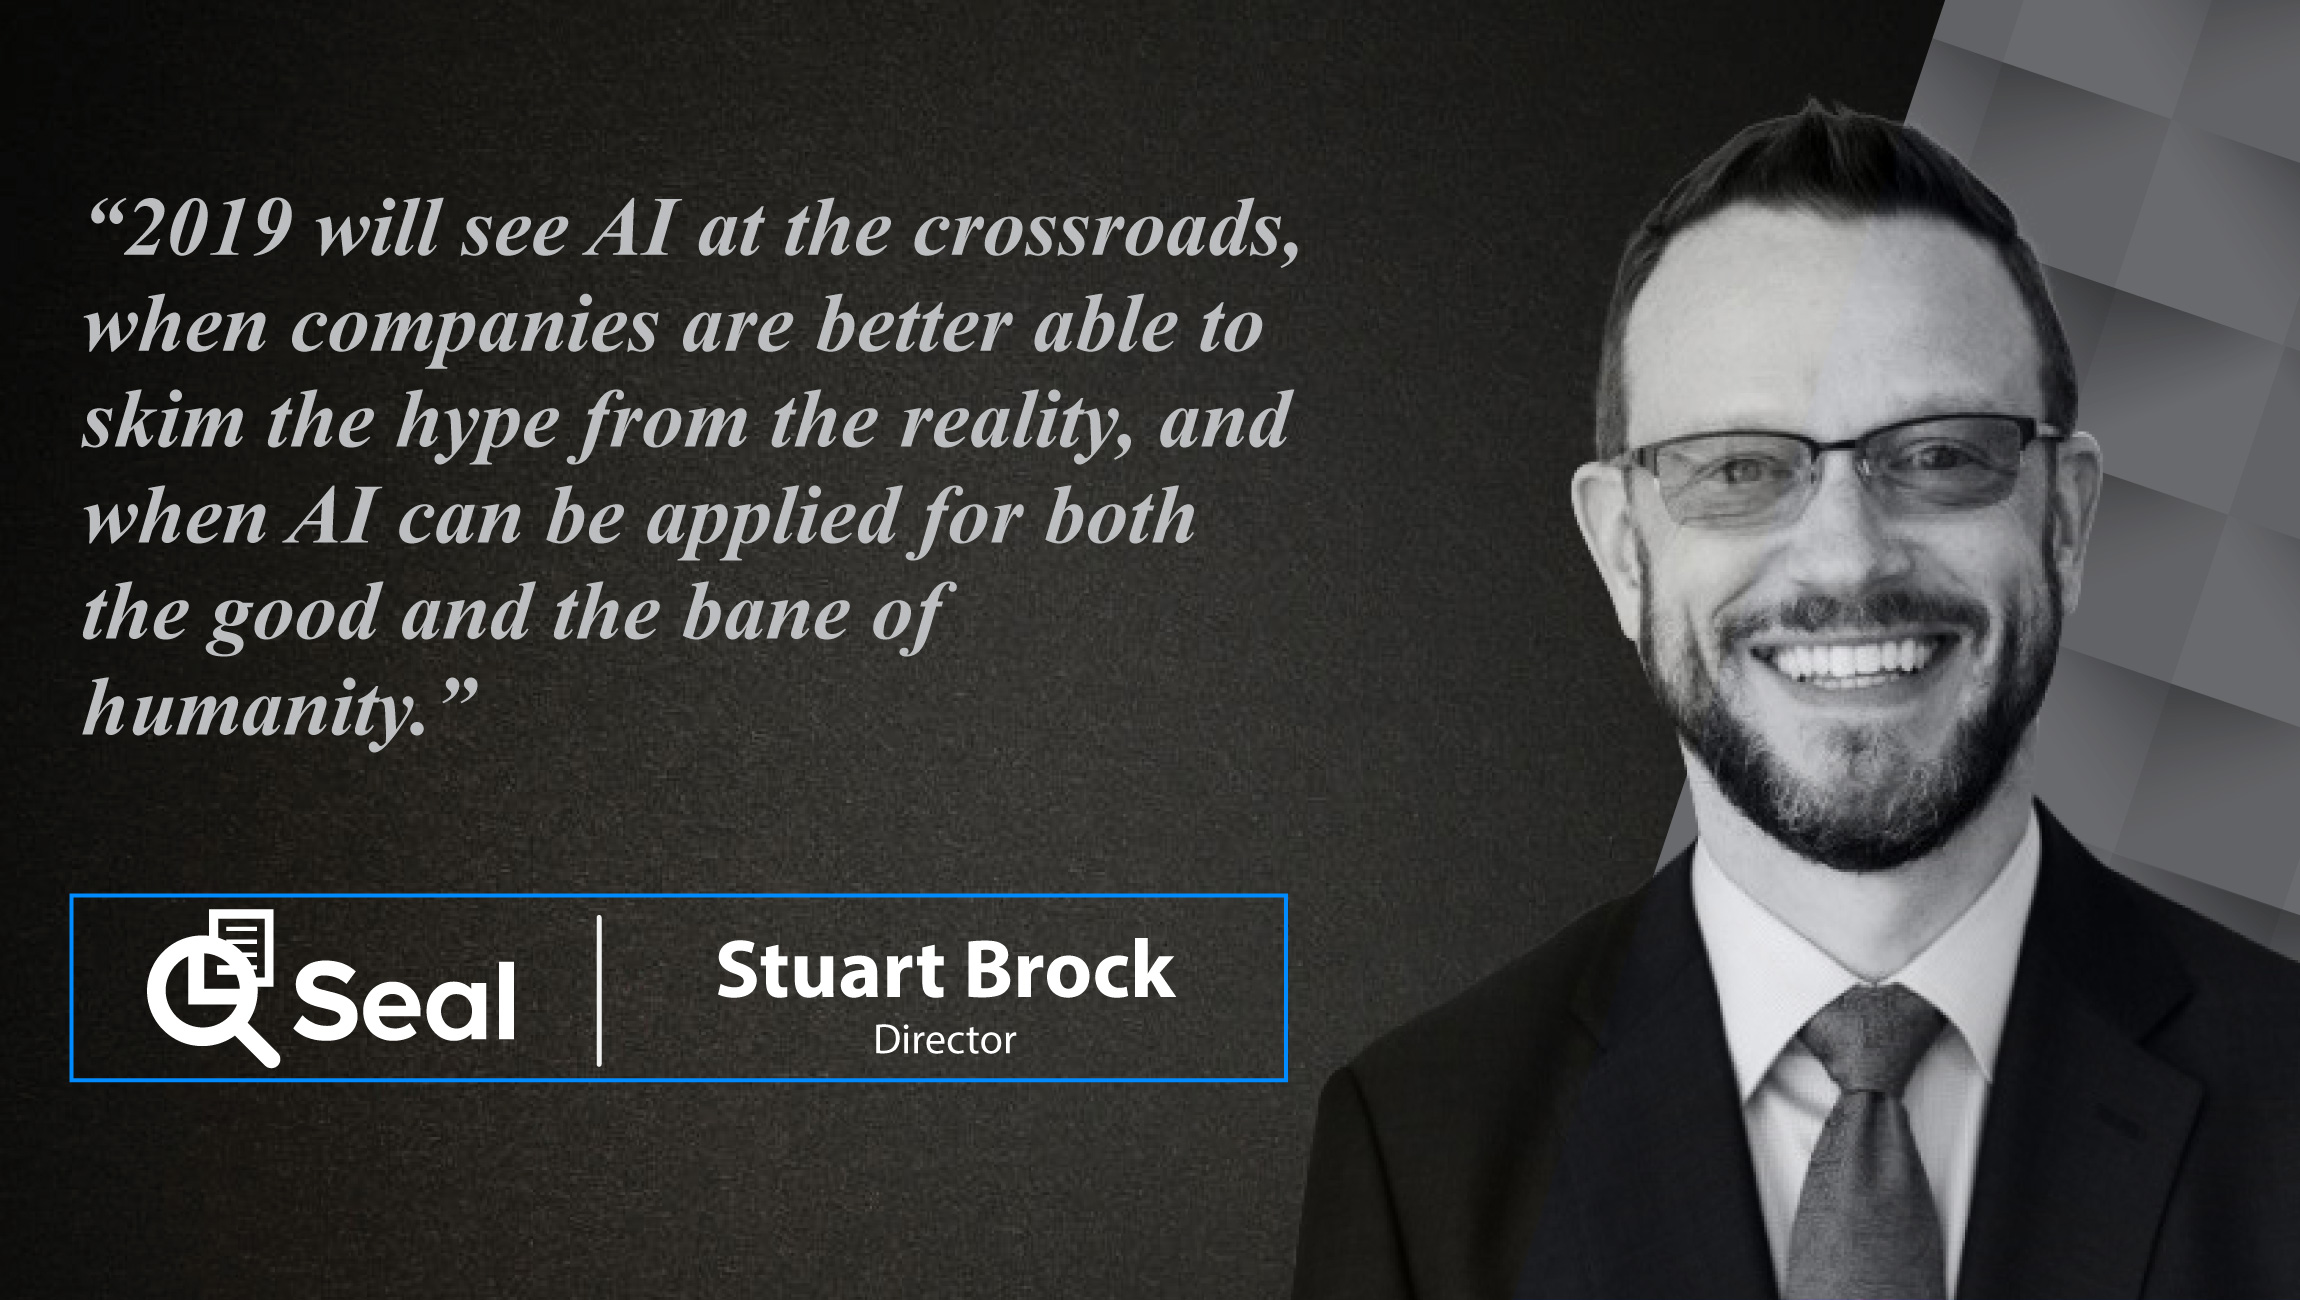 Stuart Brock, Director at Seal Software